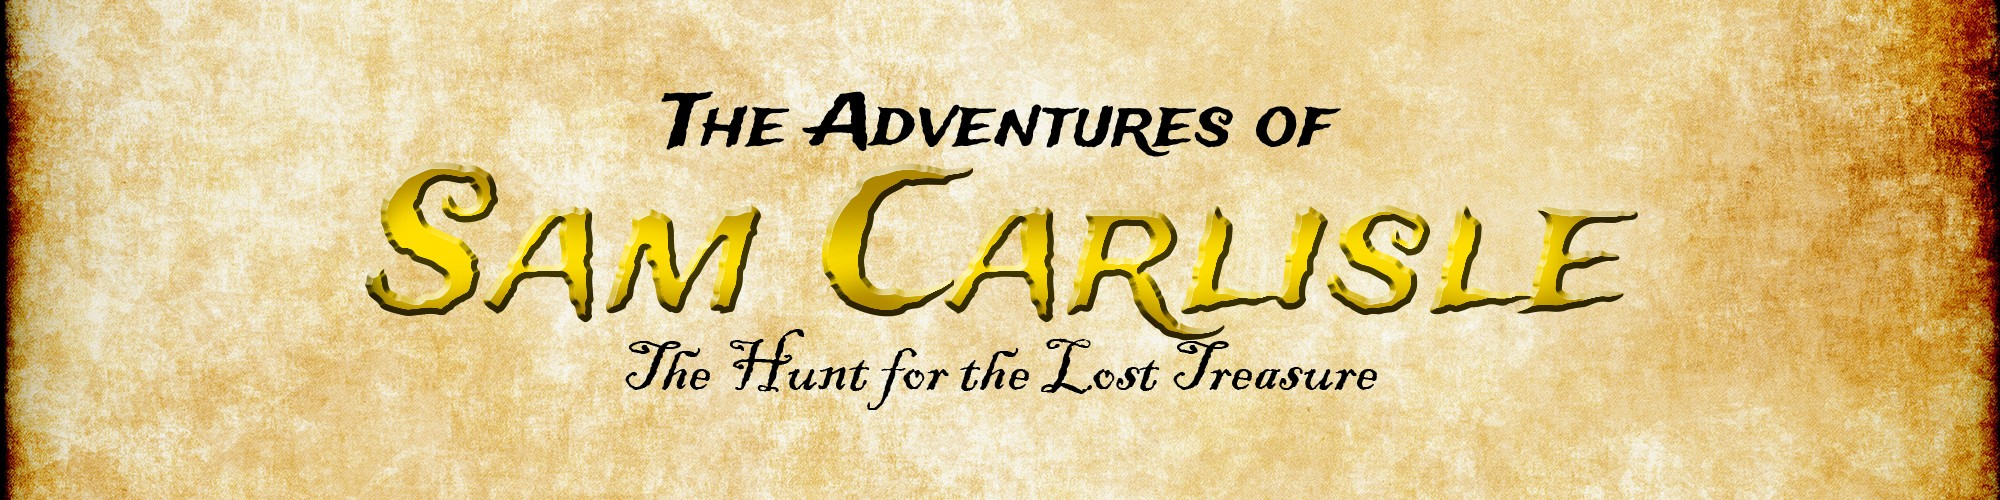 The Adventures of Sam Carlisle: The Hunt for the Lost Tressure